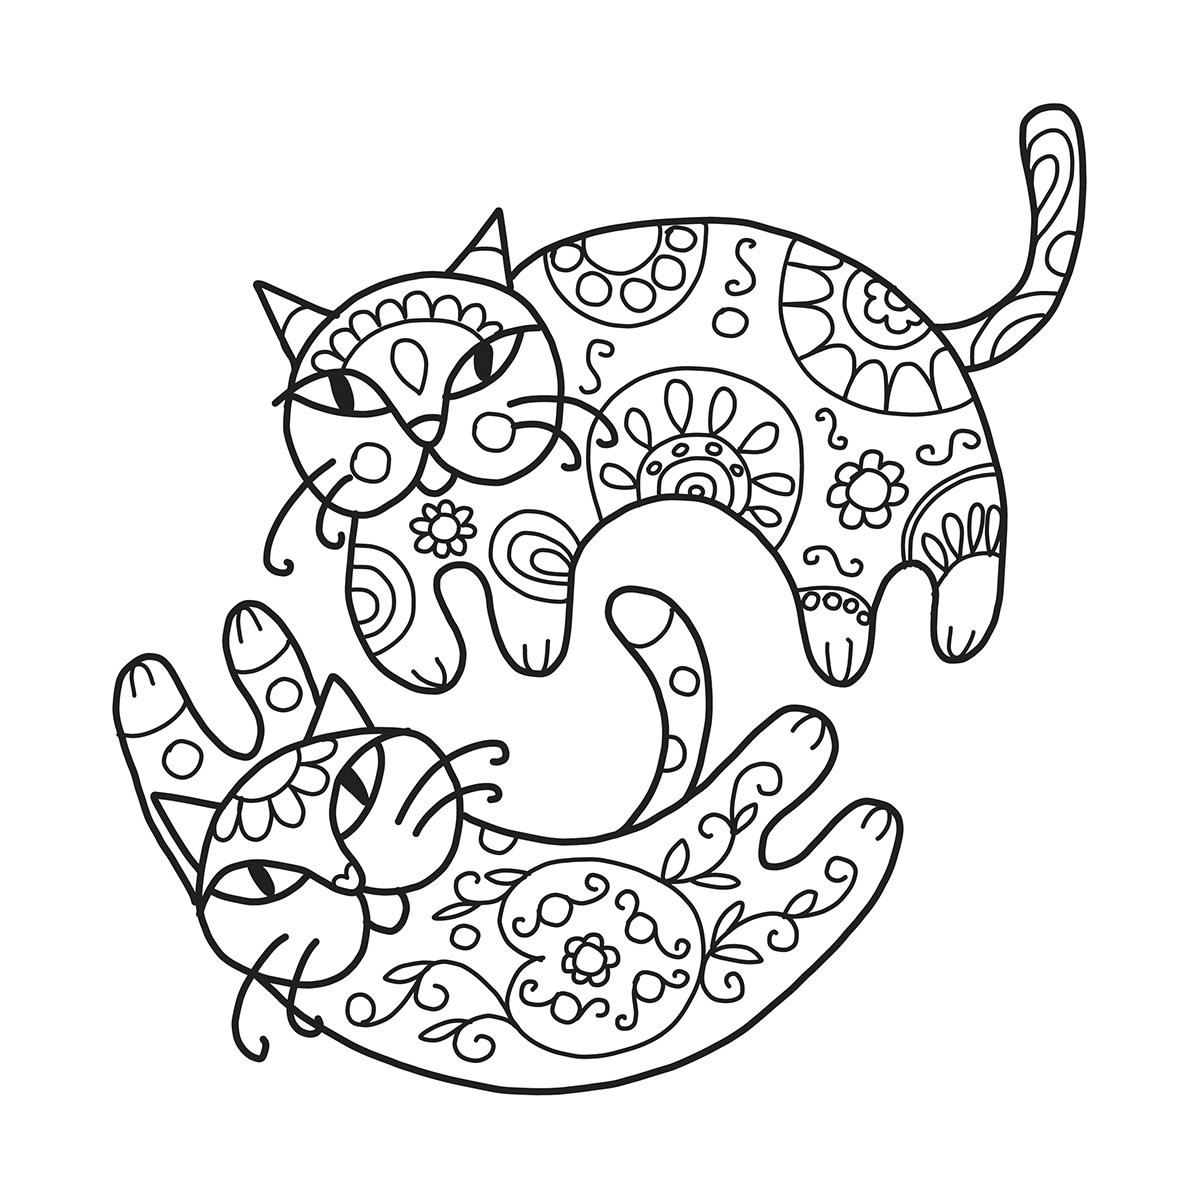 Colorama Coloring Book Pages  Colorama Books Coloring Pages